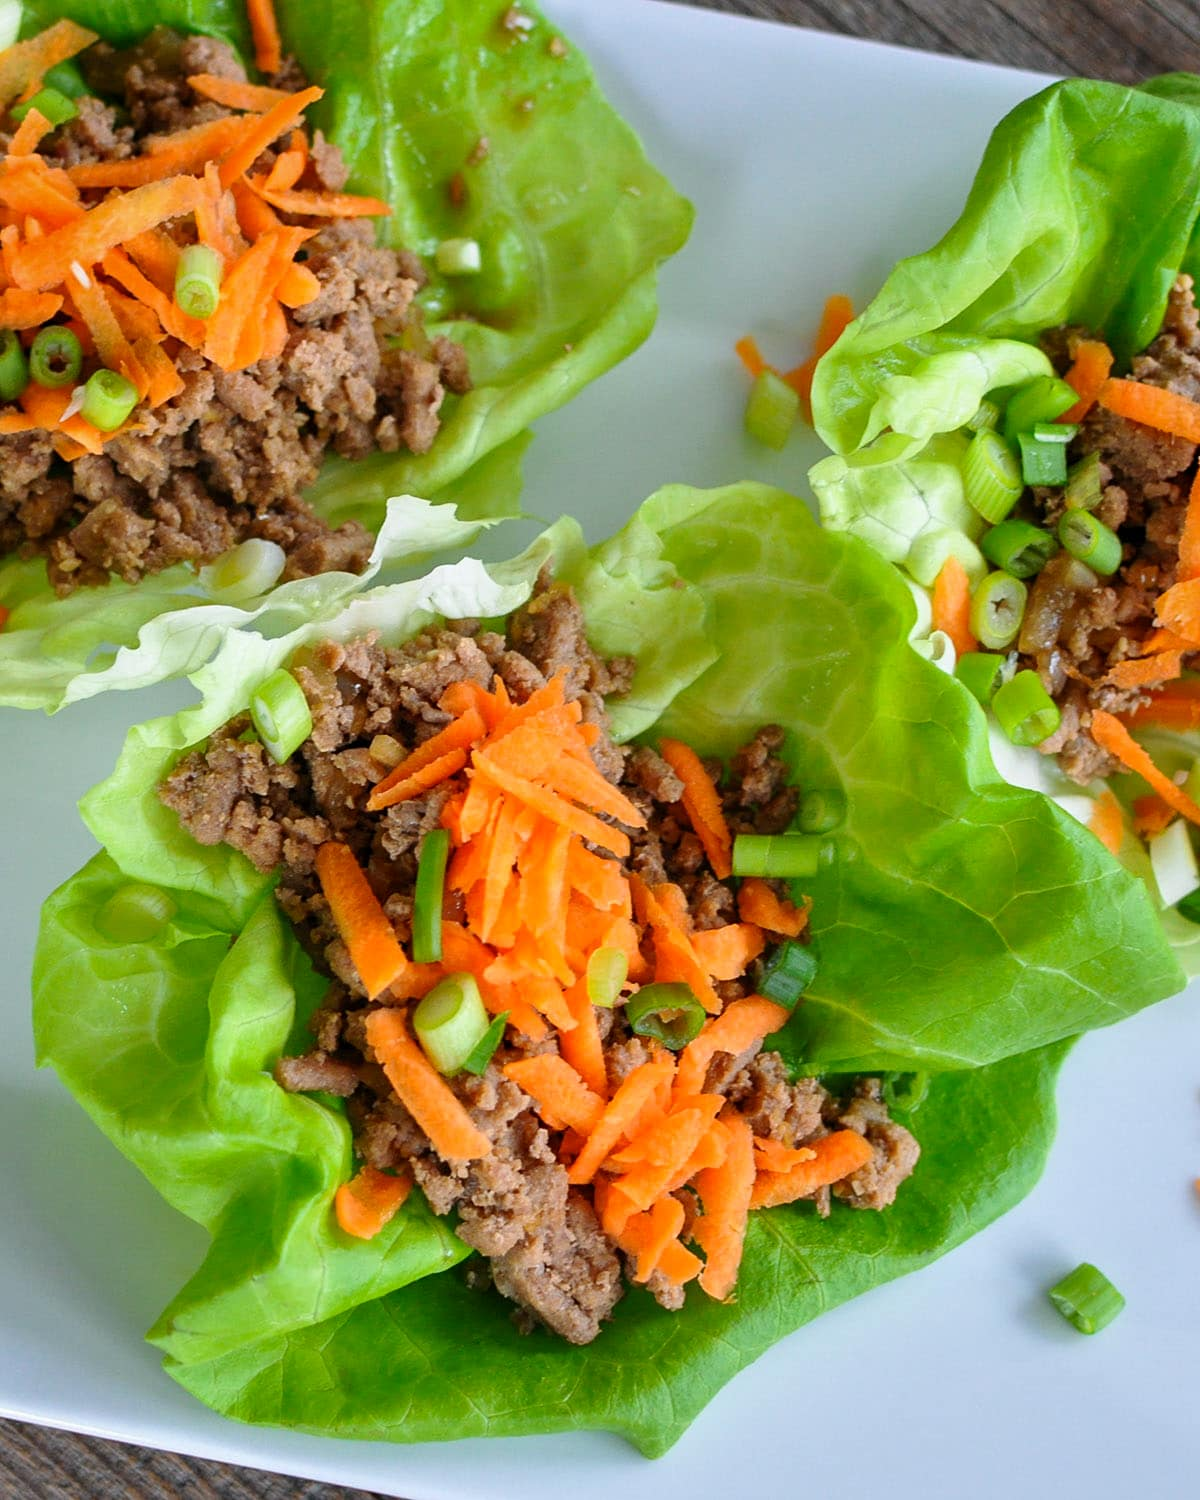 ginger and garlic spiced ground meat in a lettuce cup topped with carrots